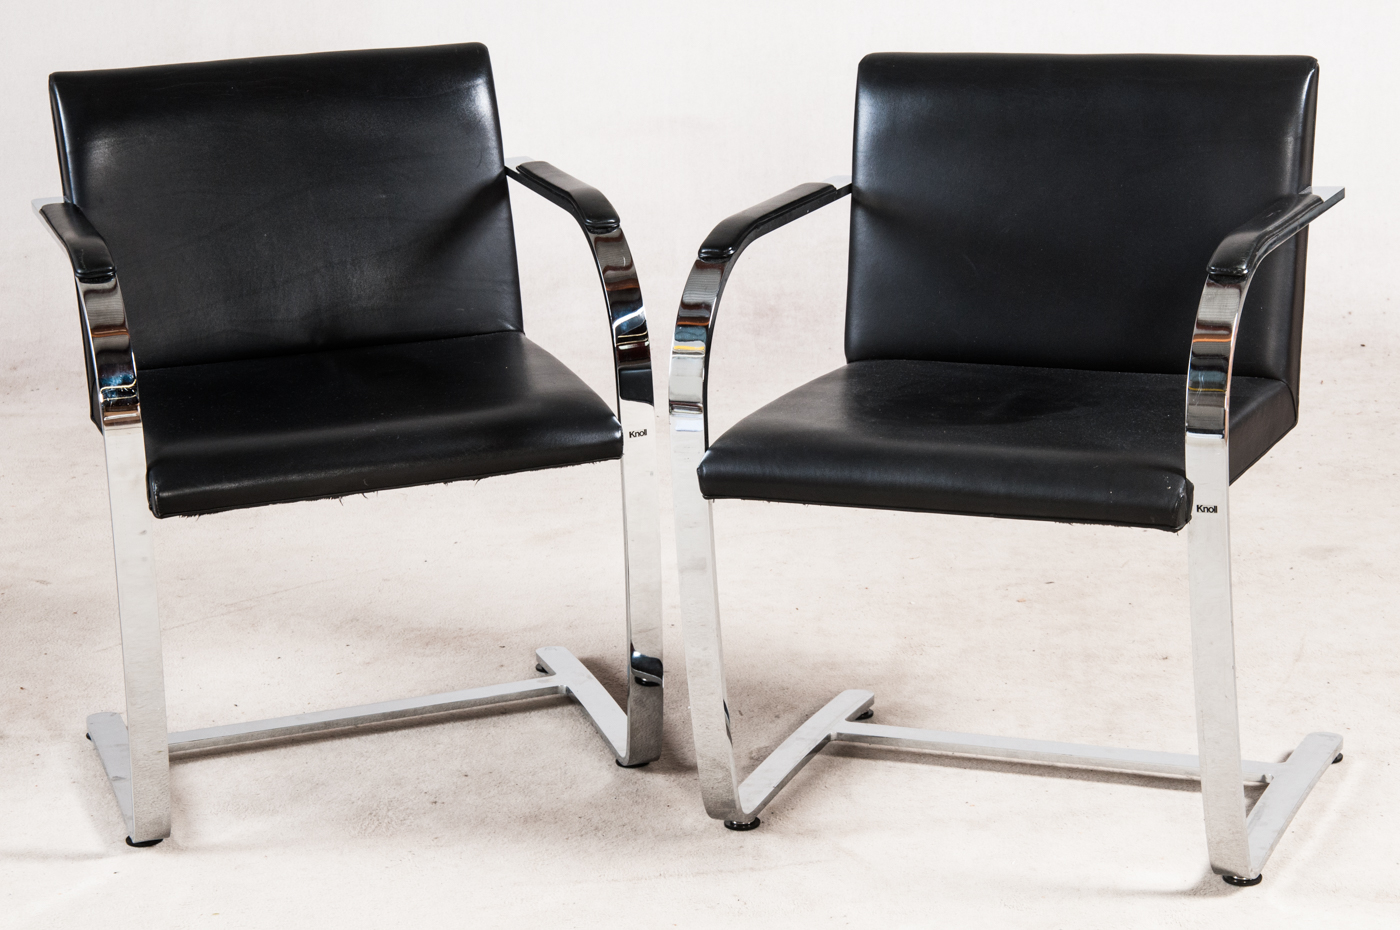 Ludwig Mies van der Rohe, two chairs / cantilever / chair 'Brno' model 'MR50', for Knoll International (2)